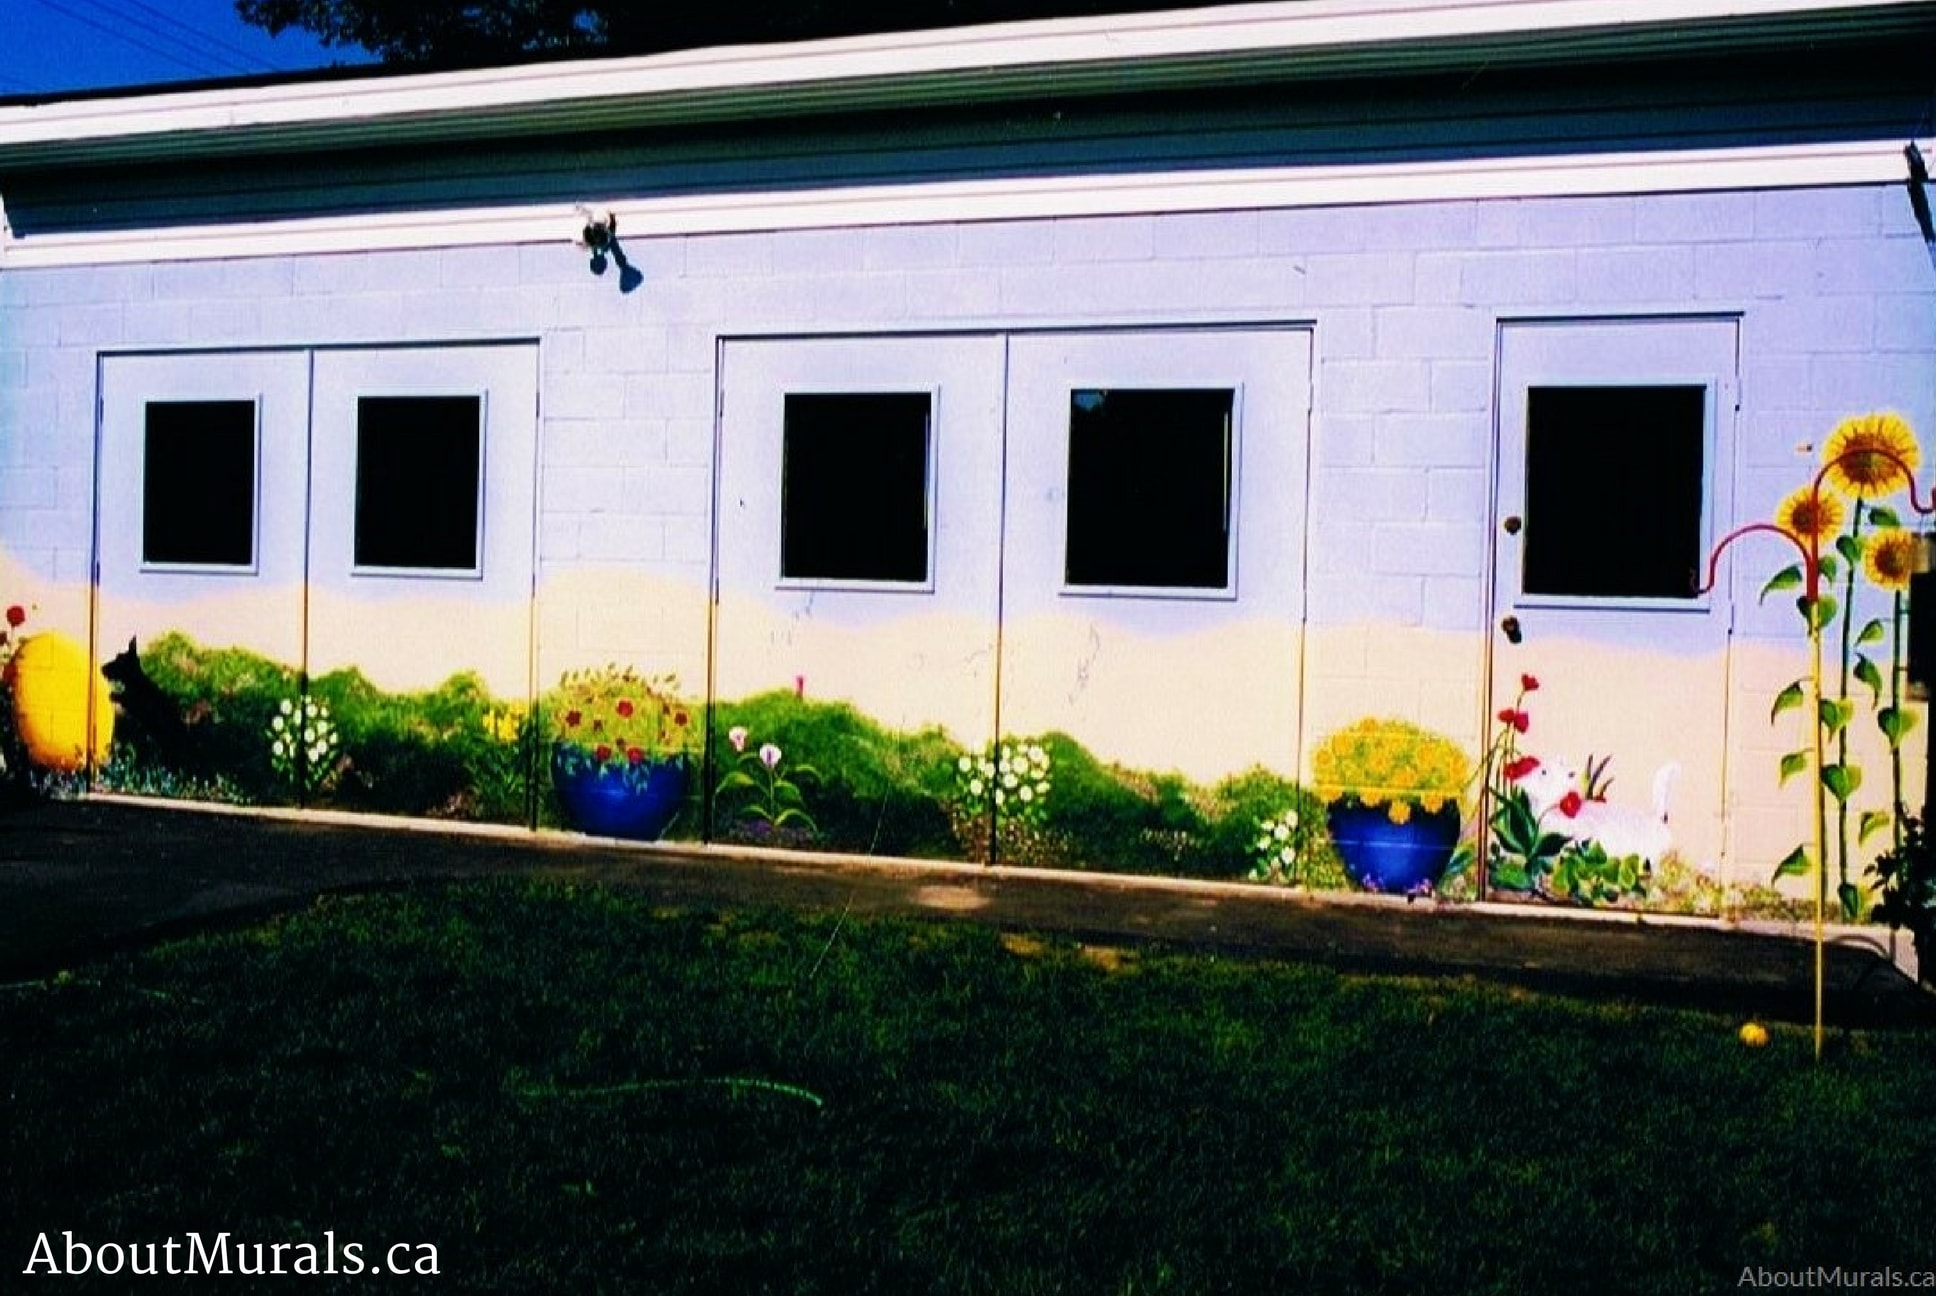 A garden mural painted on a garage featuring sunflowers, roses, petunias and two dogs